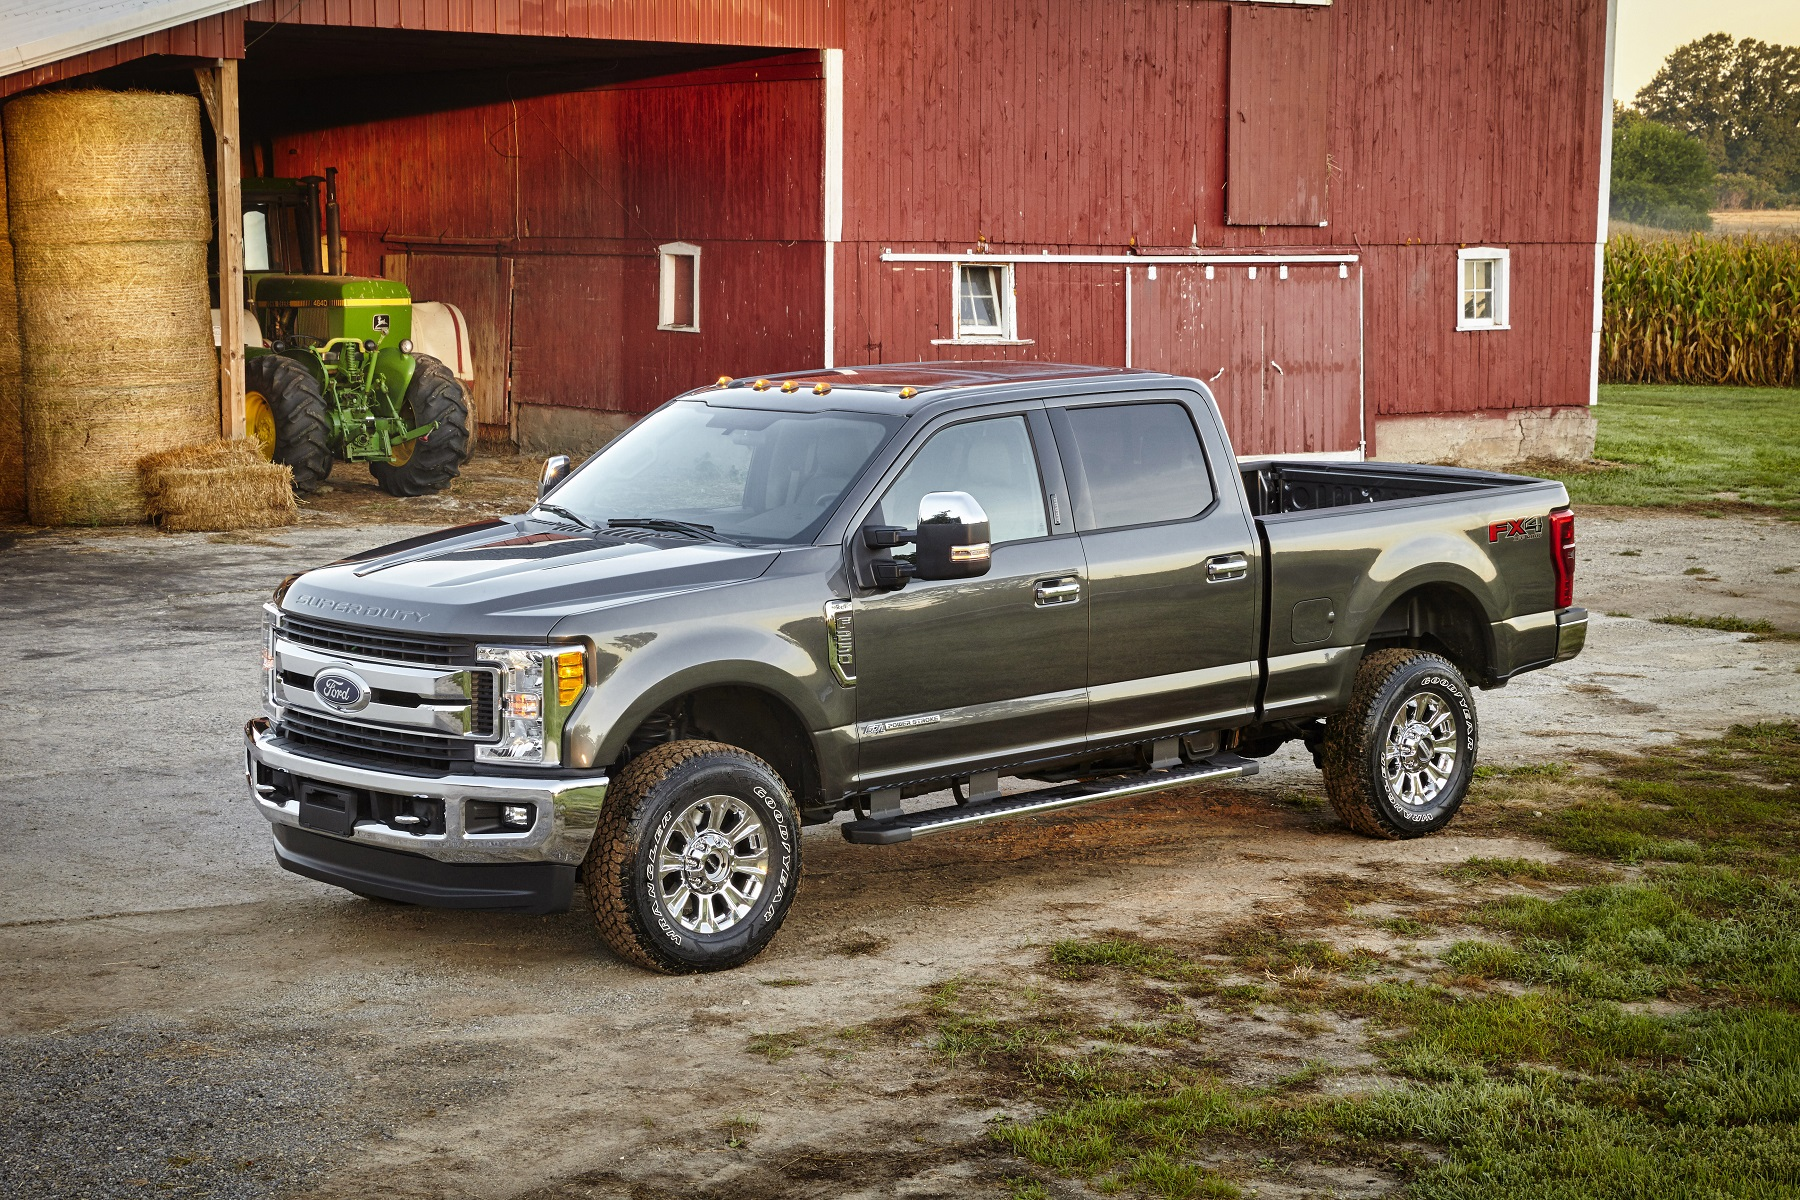 Manufacturer photo: The all-new 2017 Ford F-Series Super Duty trucks are lighter yet feature an all-new, fully-boxed frame comprising more than 95 percent high-strength steel